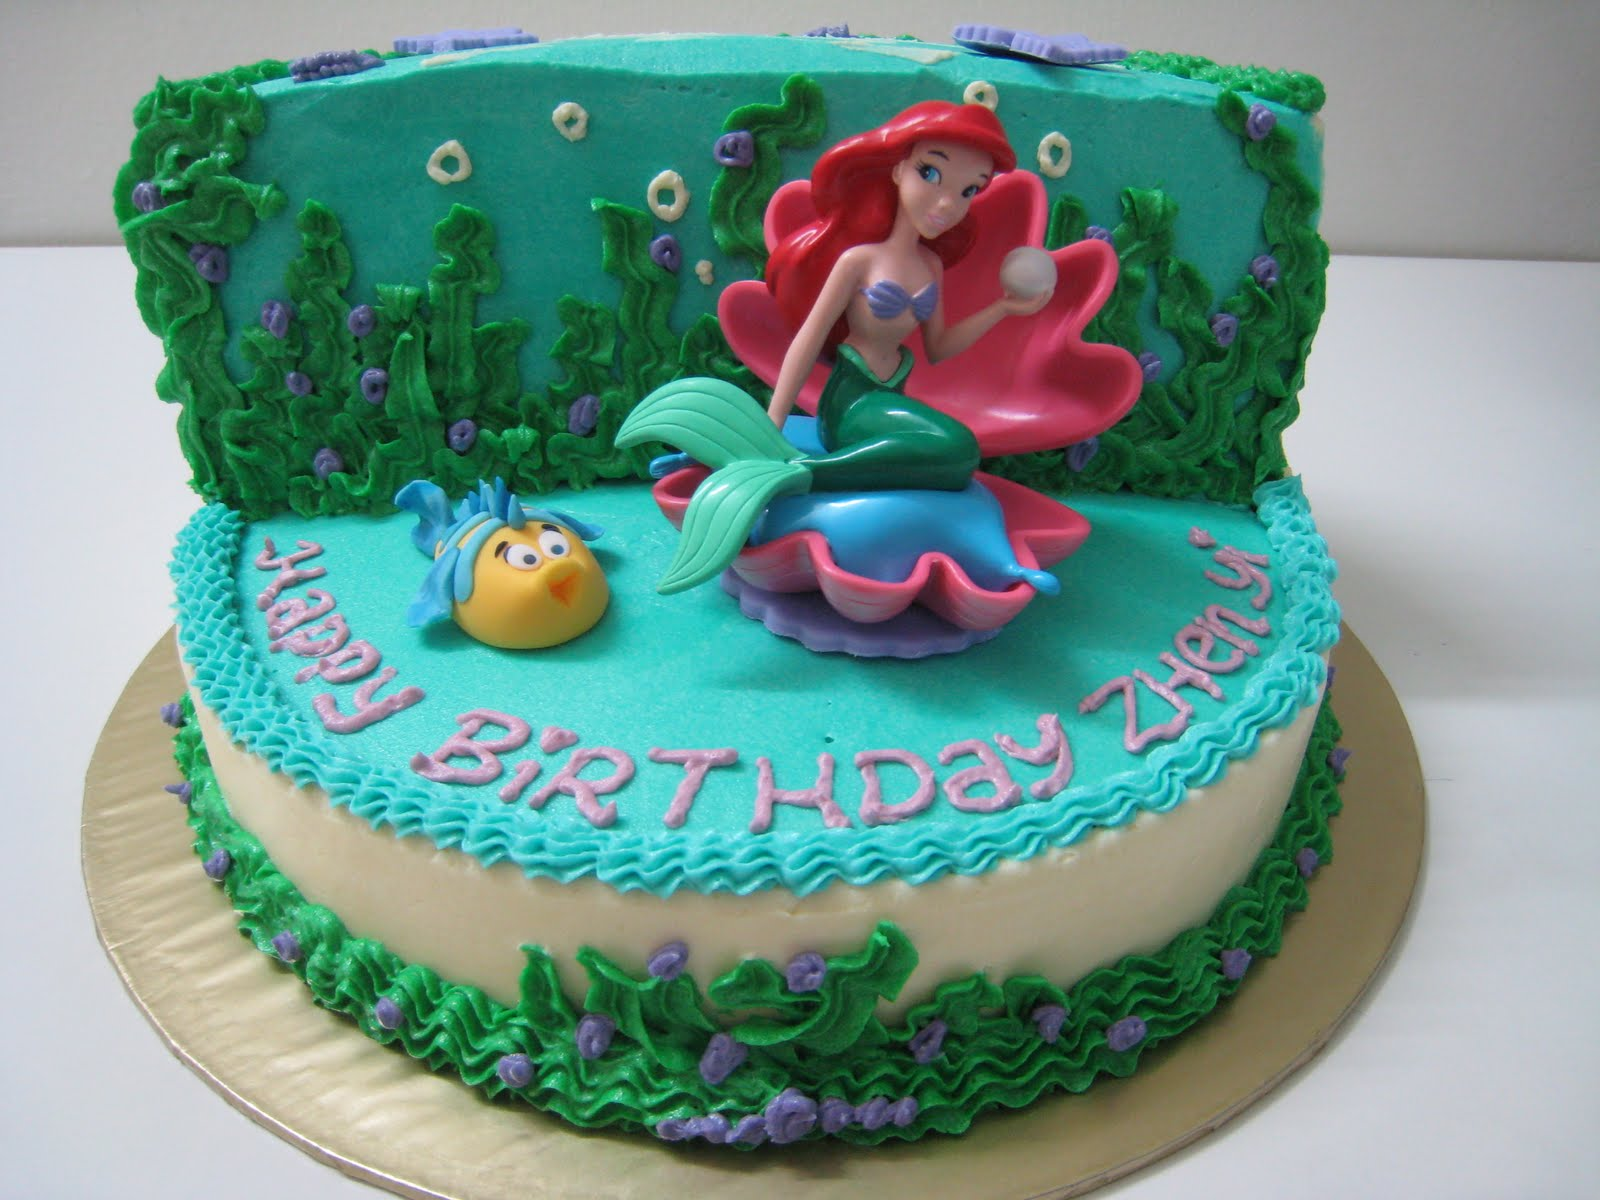 Just celebrate cakes the little mermaid ariel for Ariel cake decoration